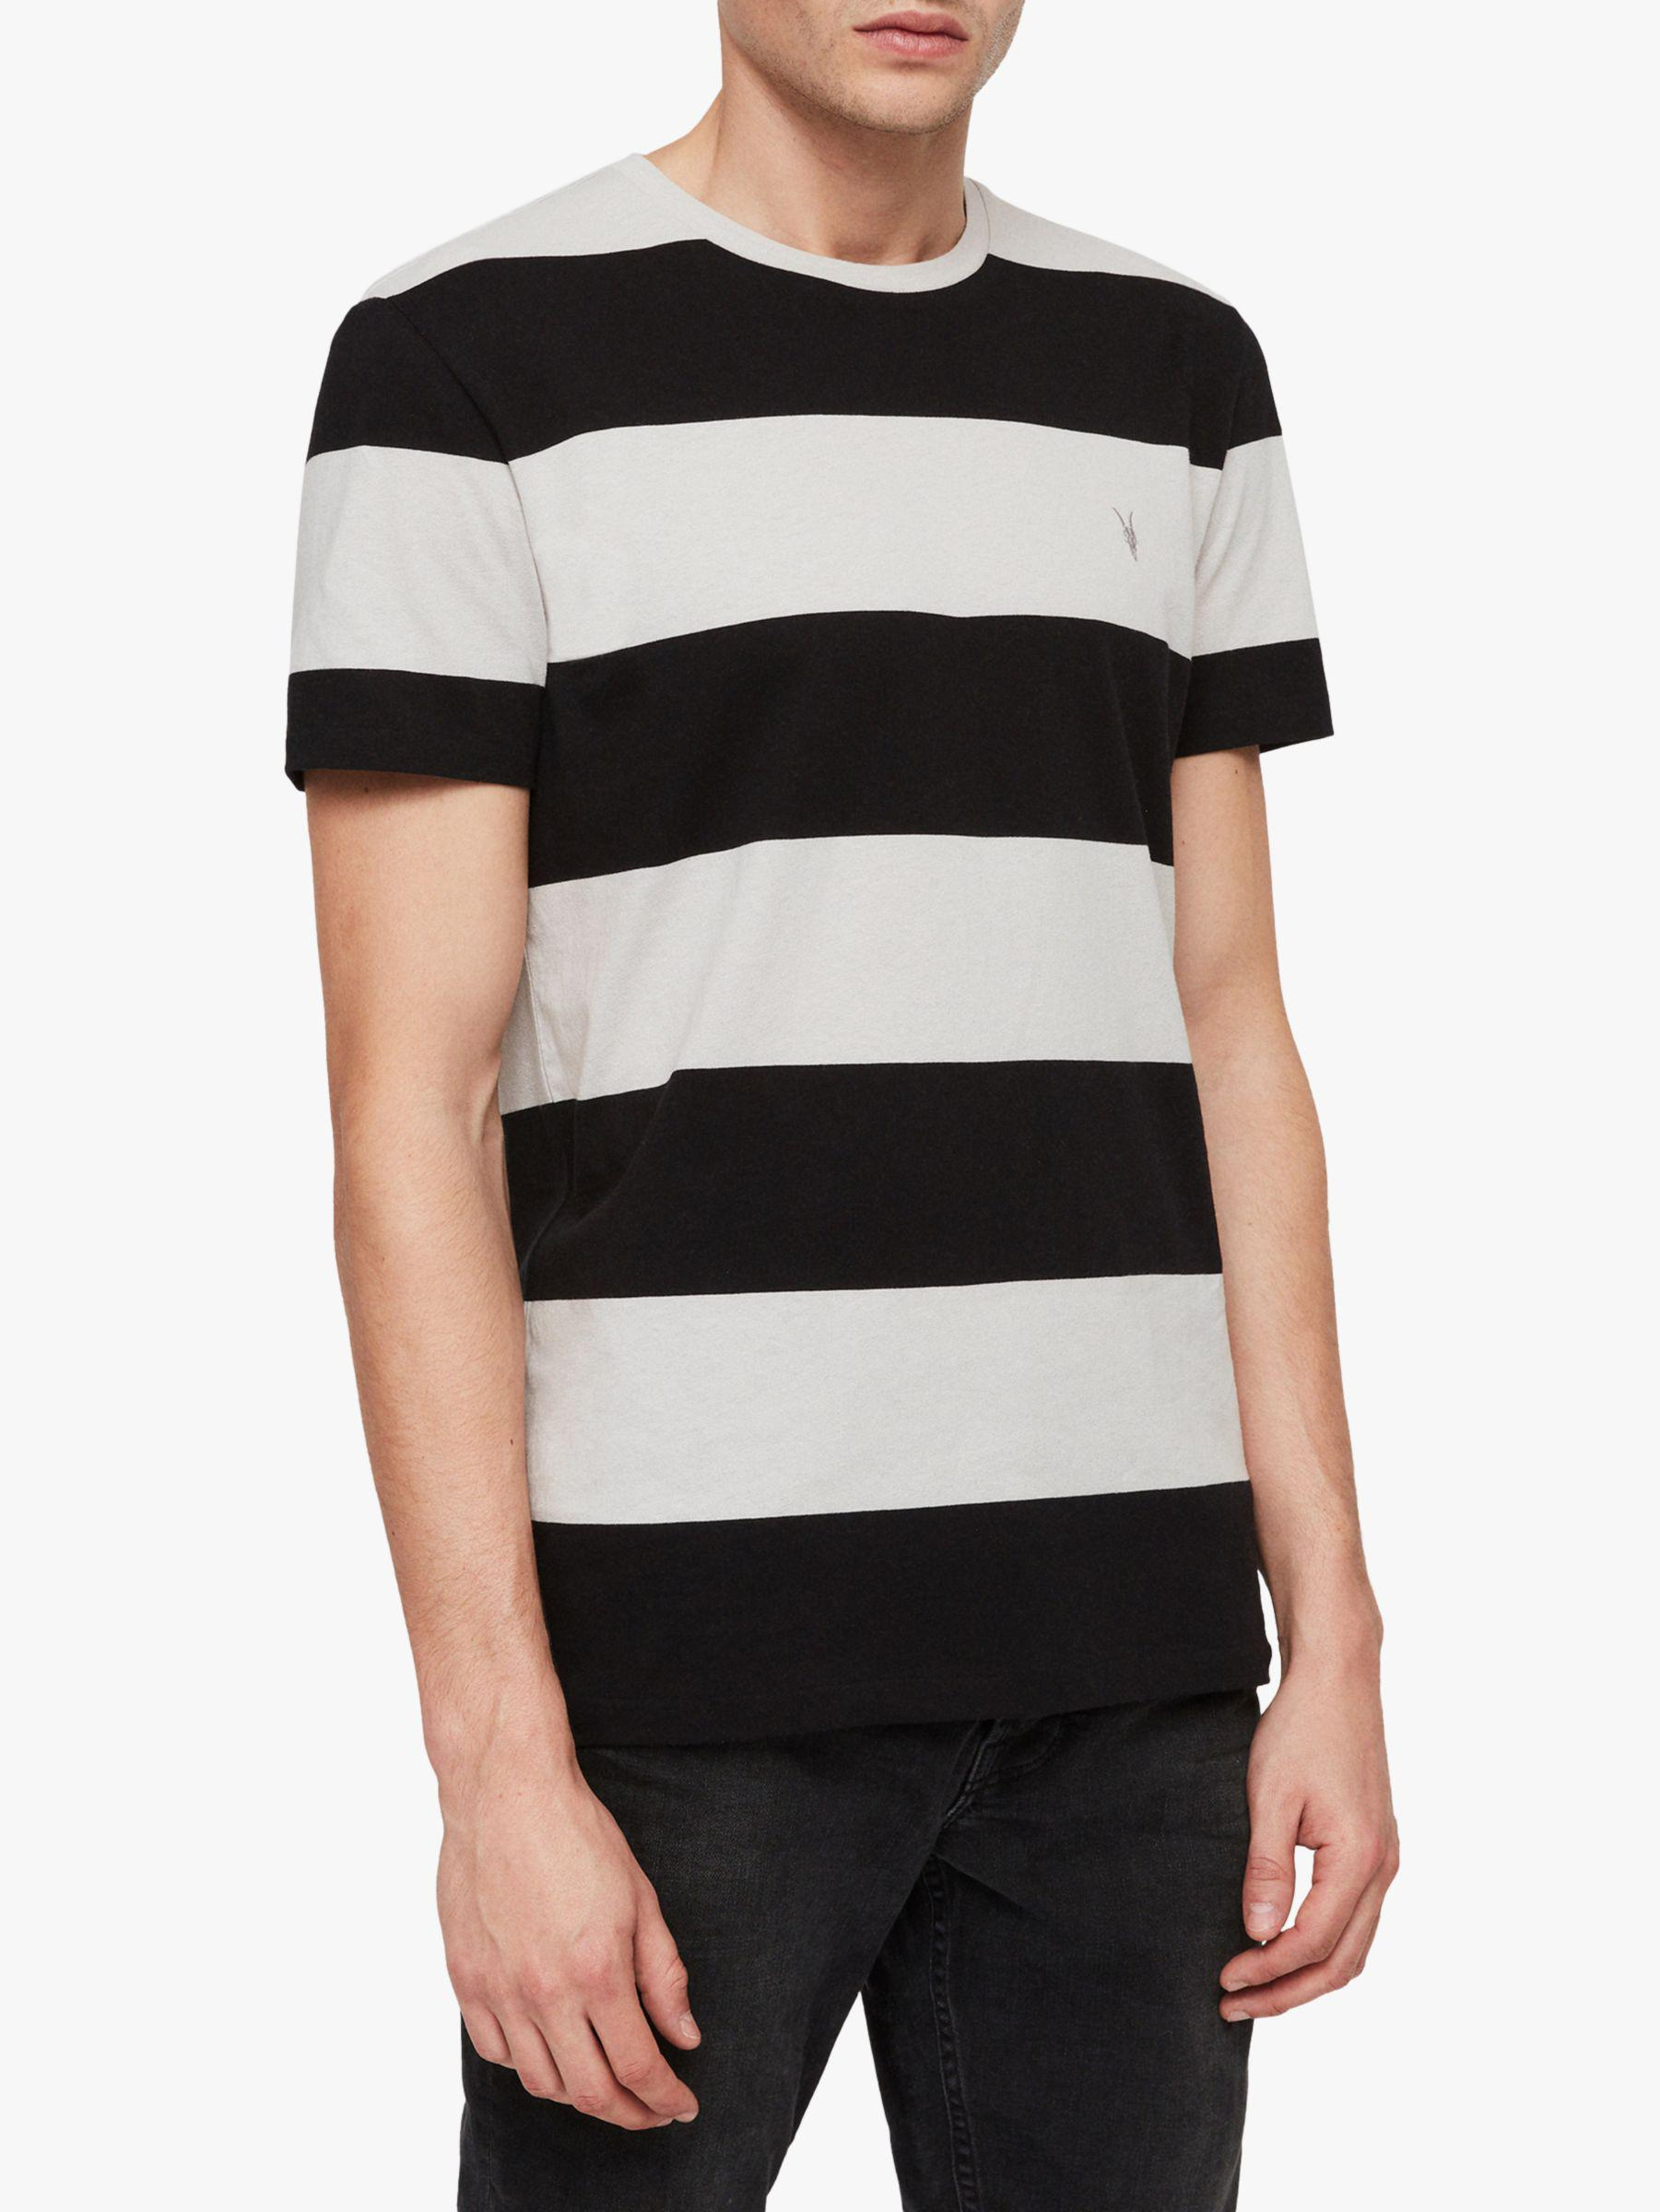 191d1927 AllSaints Gella Crew T-shirt in Black for Men - Save 40% - Lyst